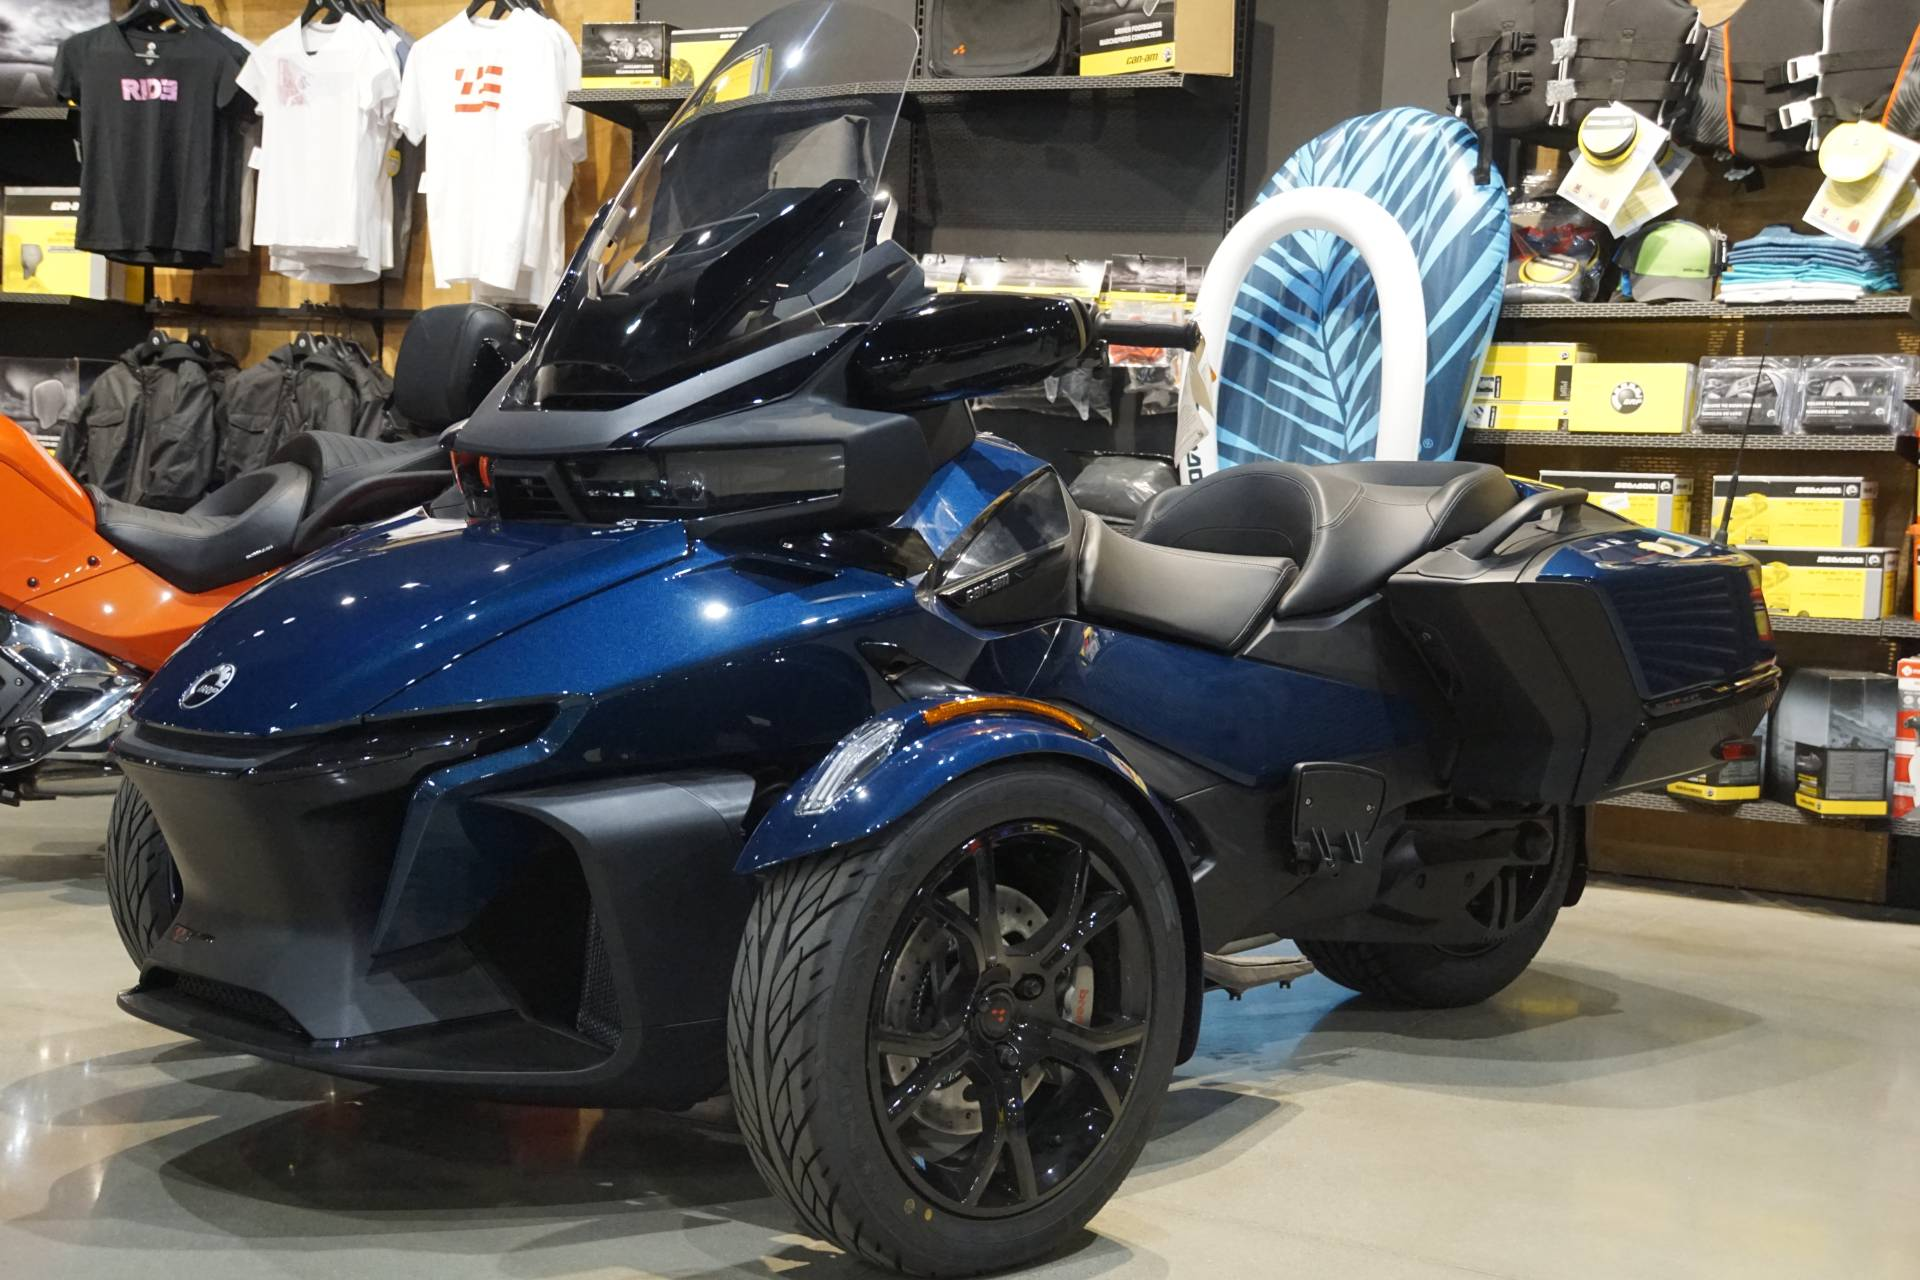 2020 Can-Am Spyder RT in Elk Grove, California - Photo 1